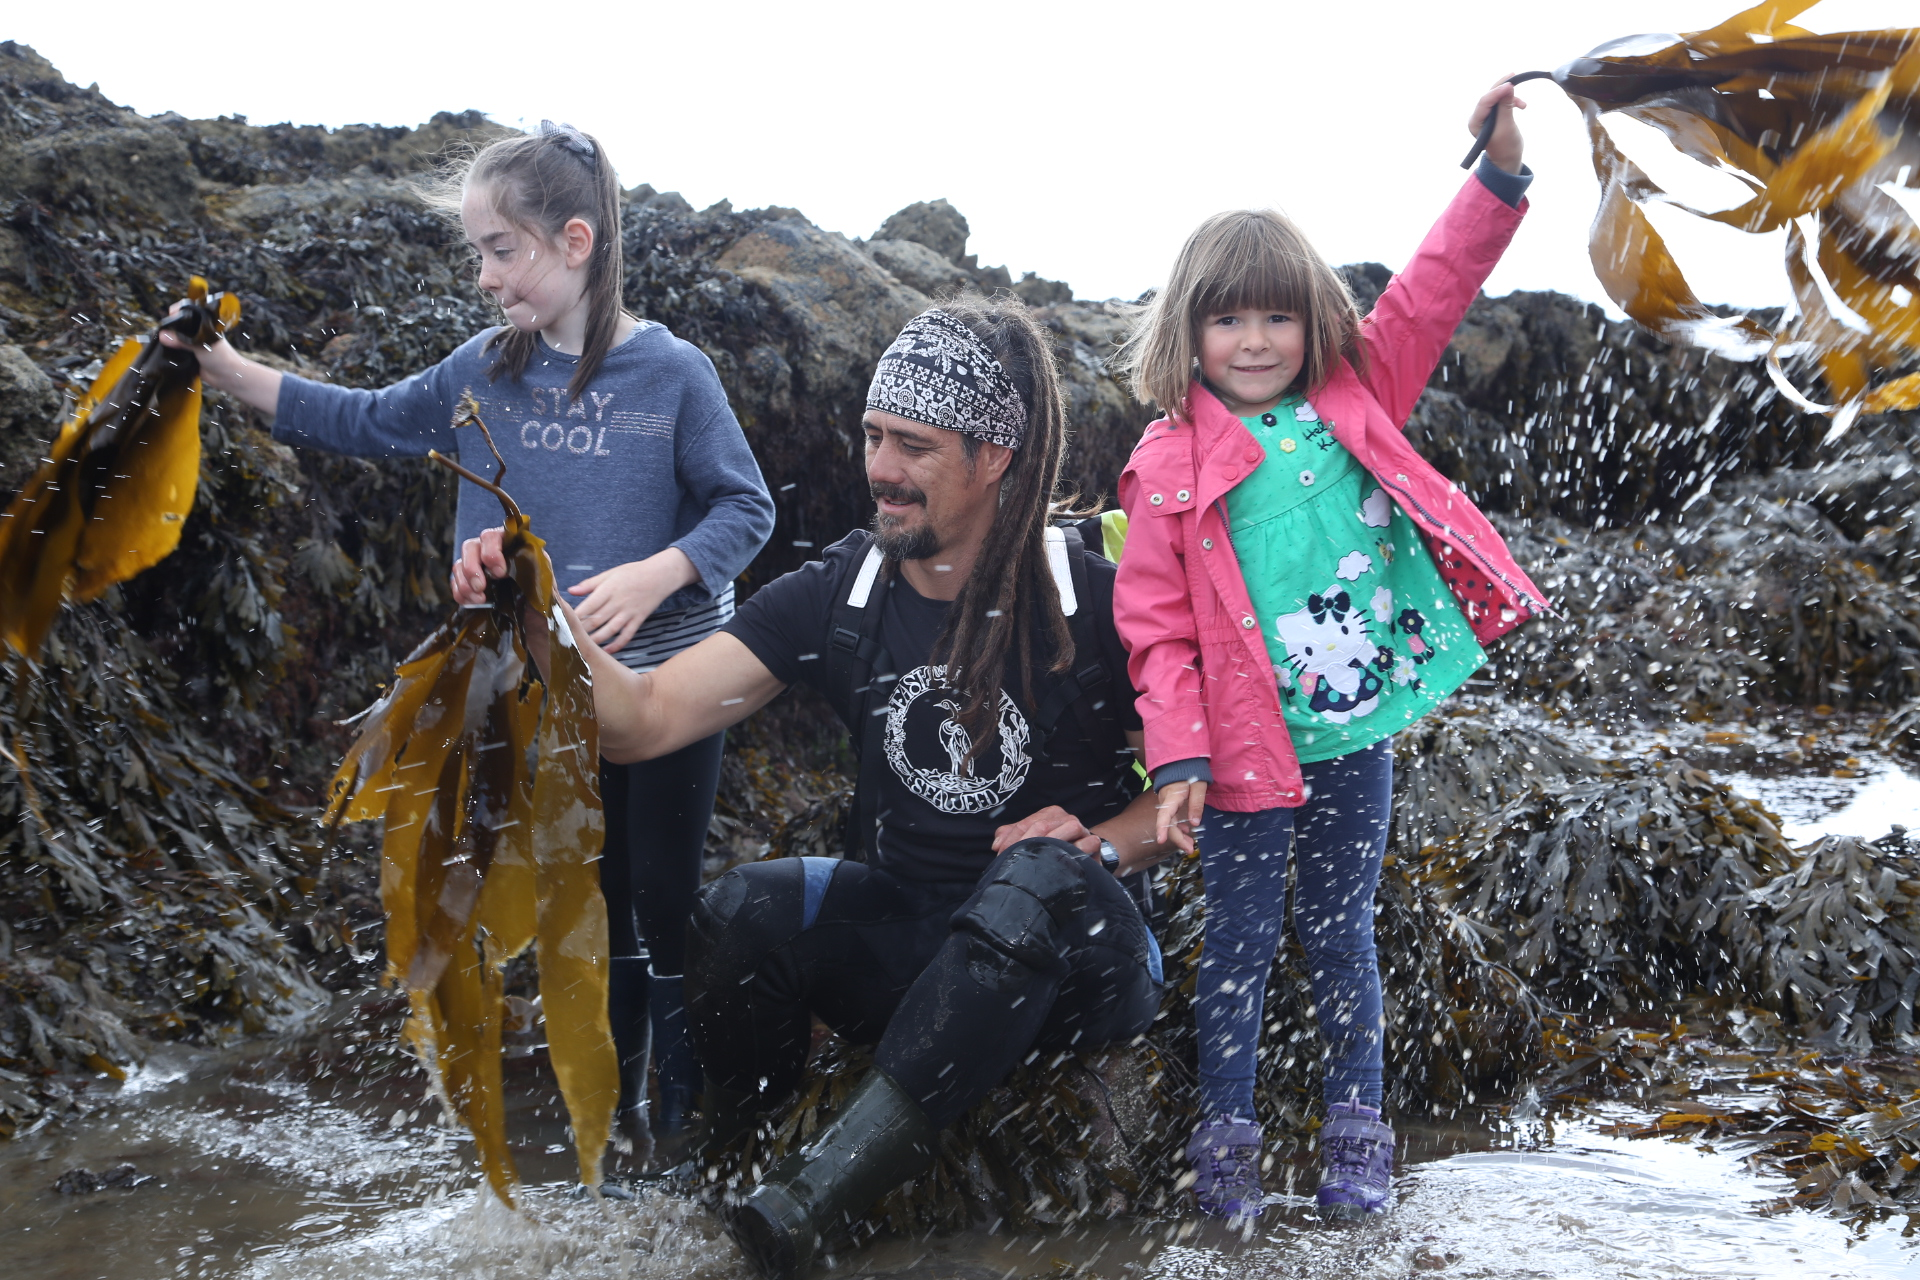 Seaweed forager Jayson Byles shows local children his craft in Fife's East Neuk